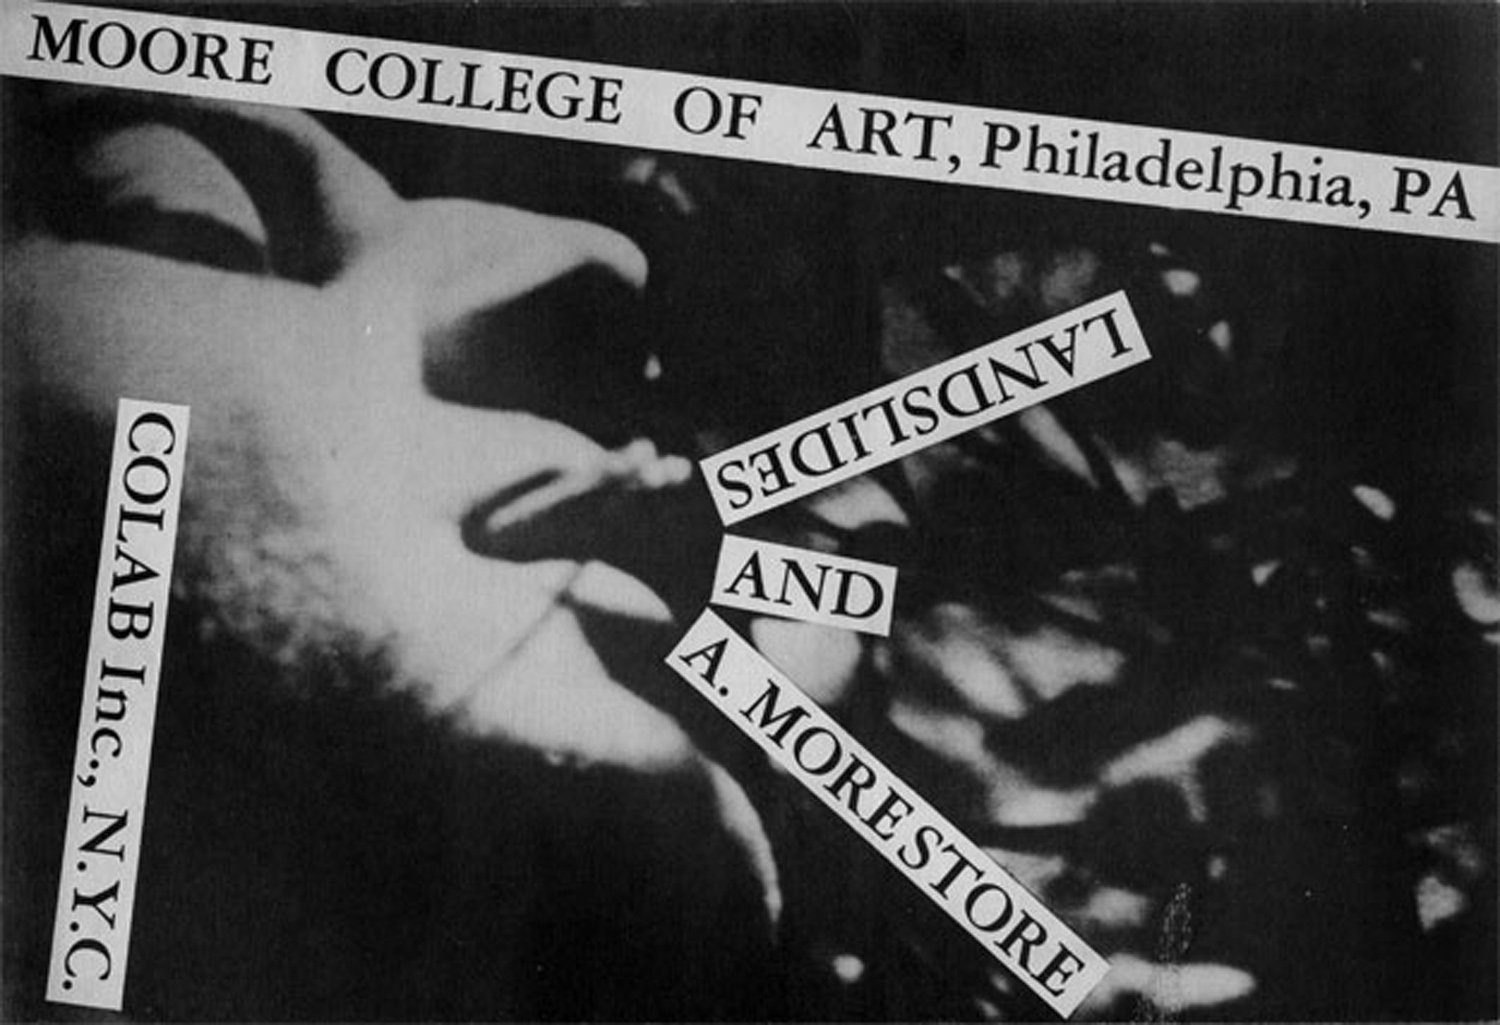 Colab show catalogue, Moore College of Art, Philadelphia, PA, 1983